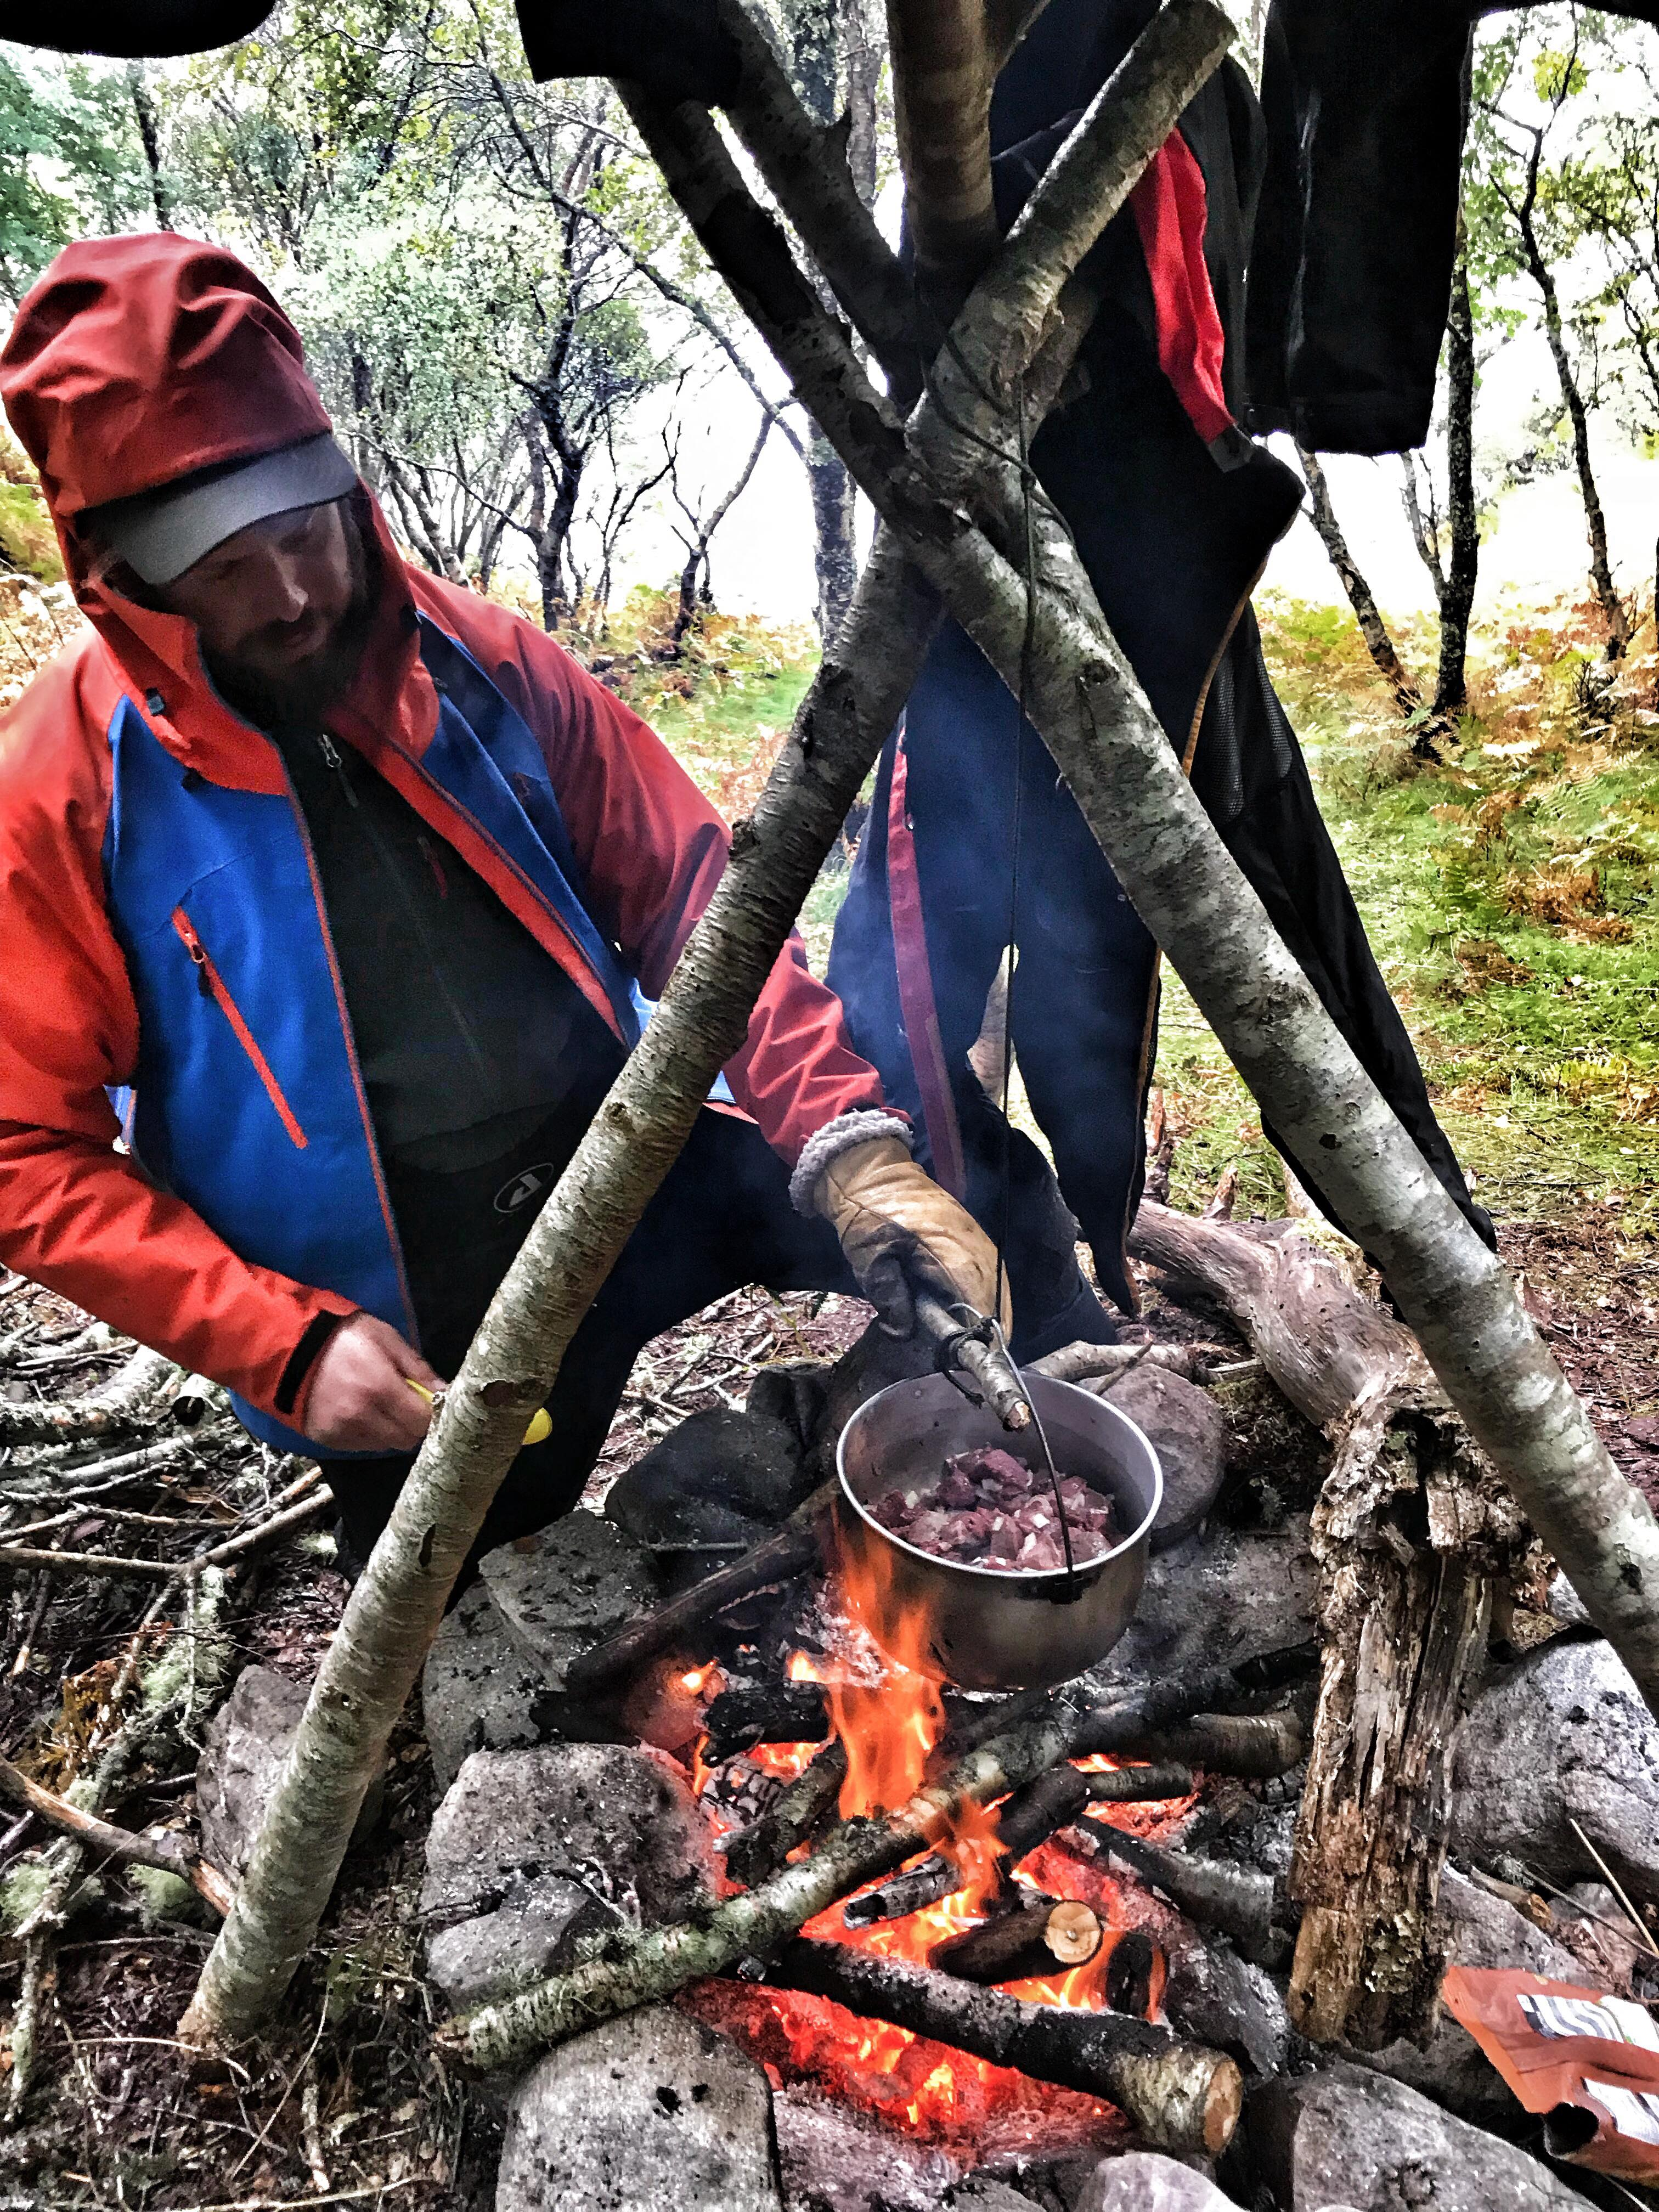 Bearded men adventures Bushcraft and wild camping